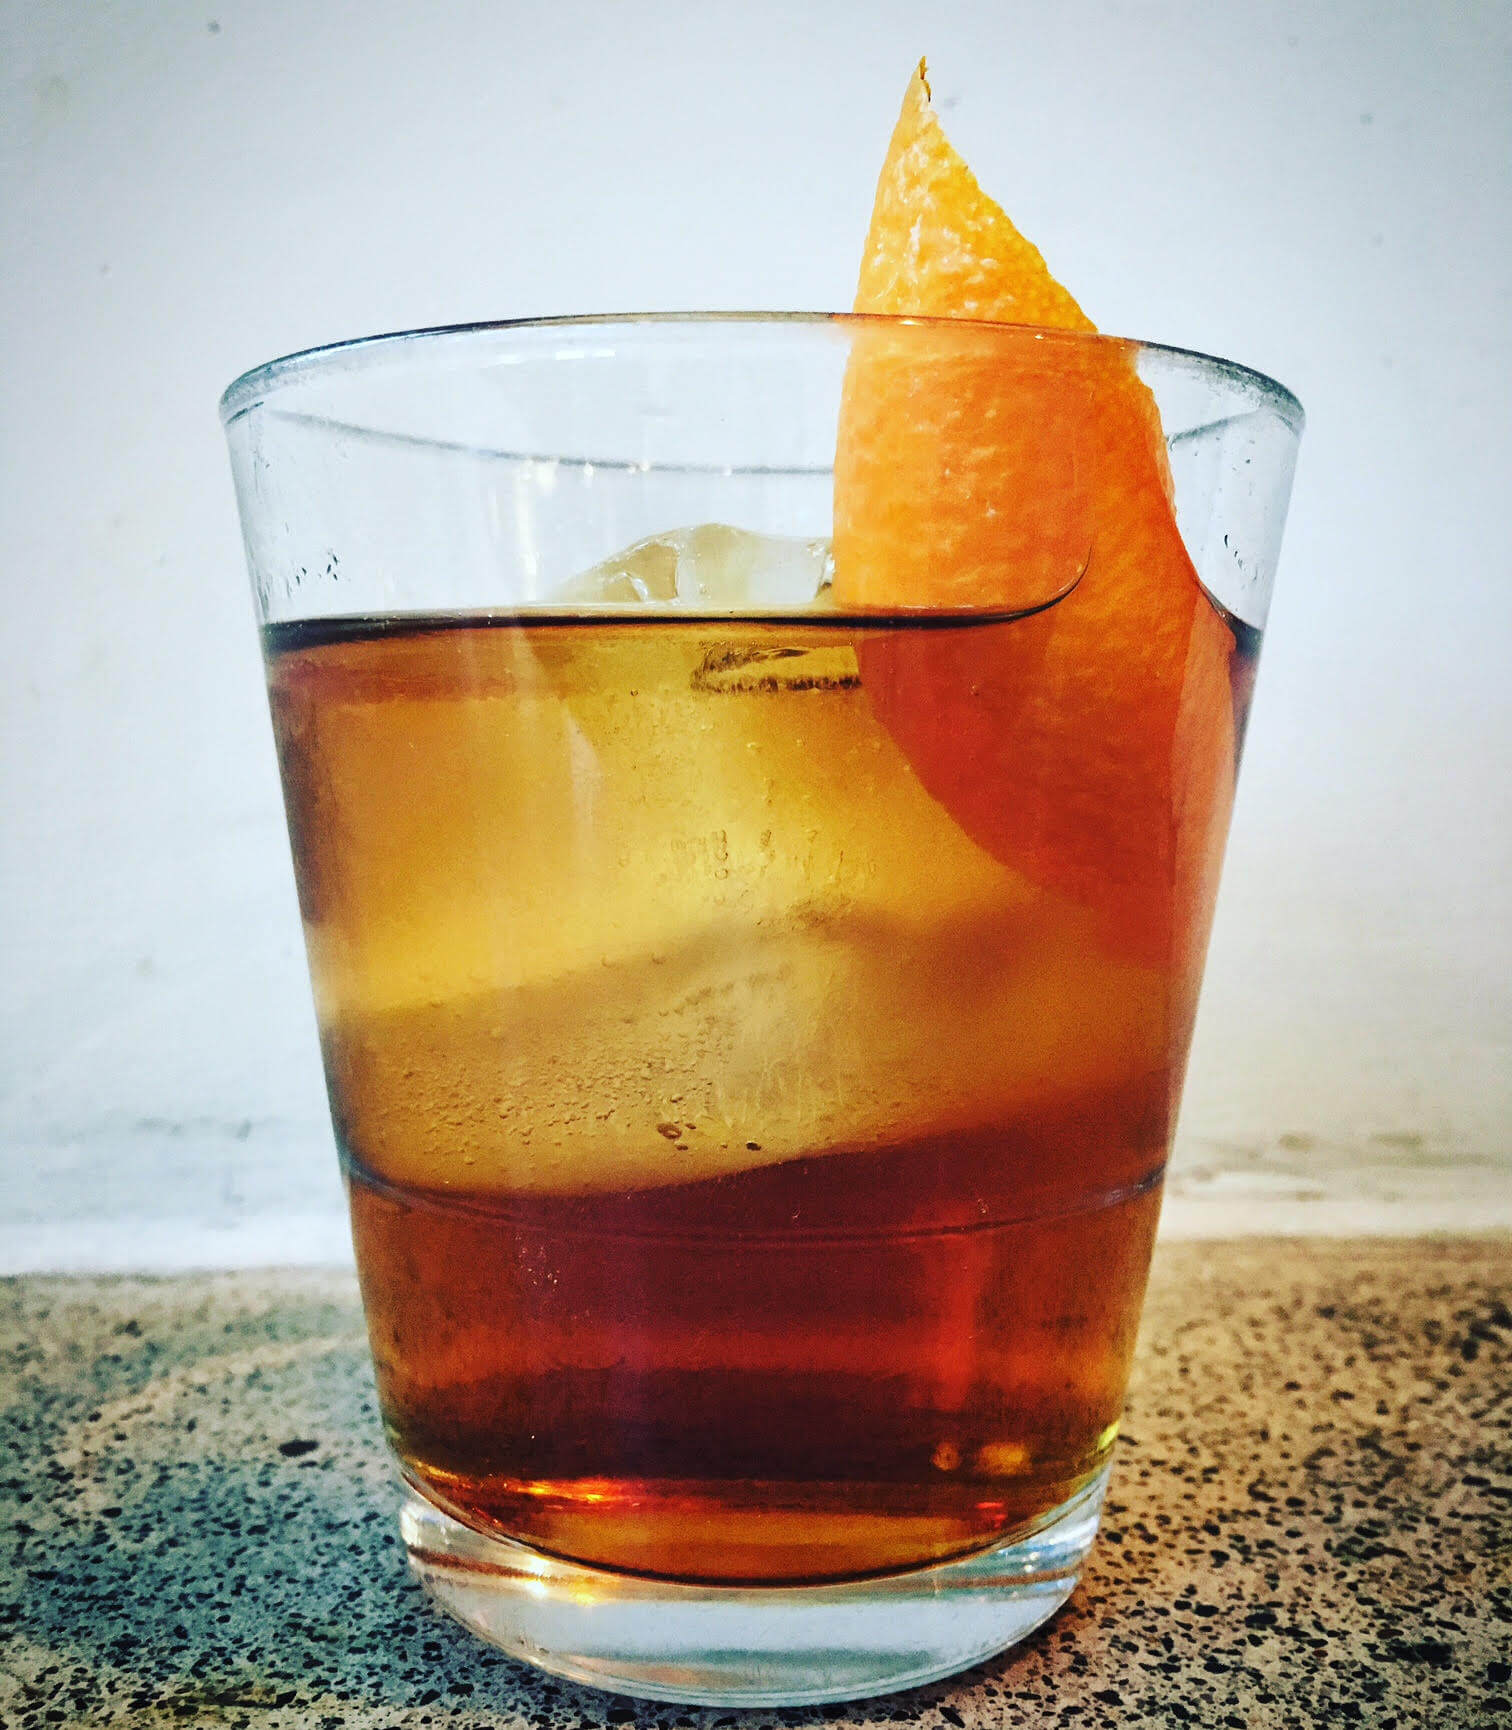 Sweet & Smoky (Just Like Me) Negroni cocktail from The Royal - 9 #negroniweek riffs